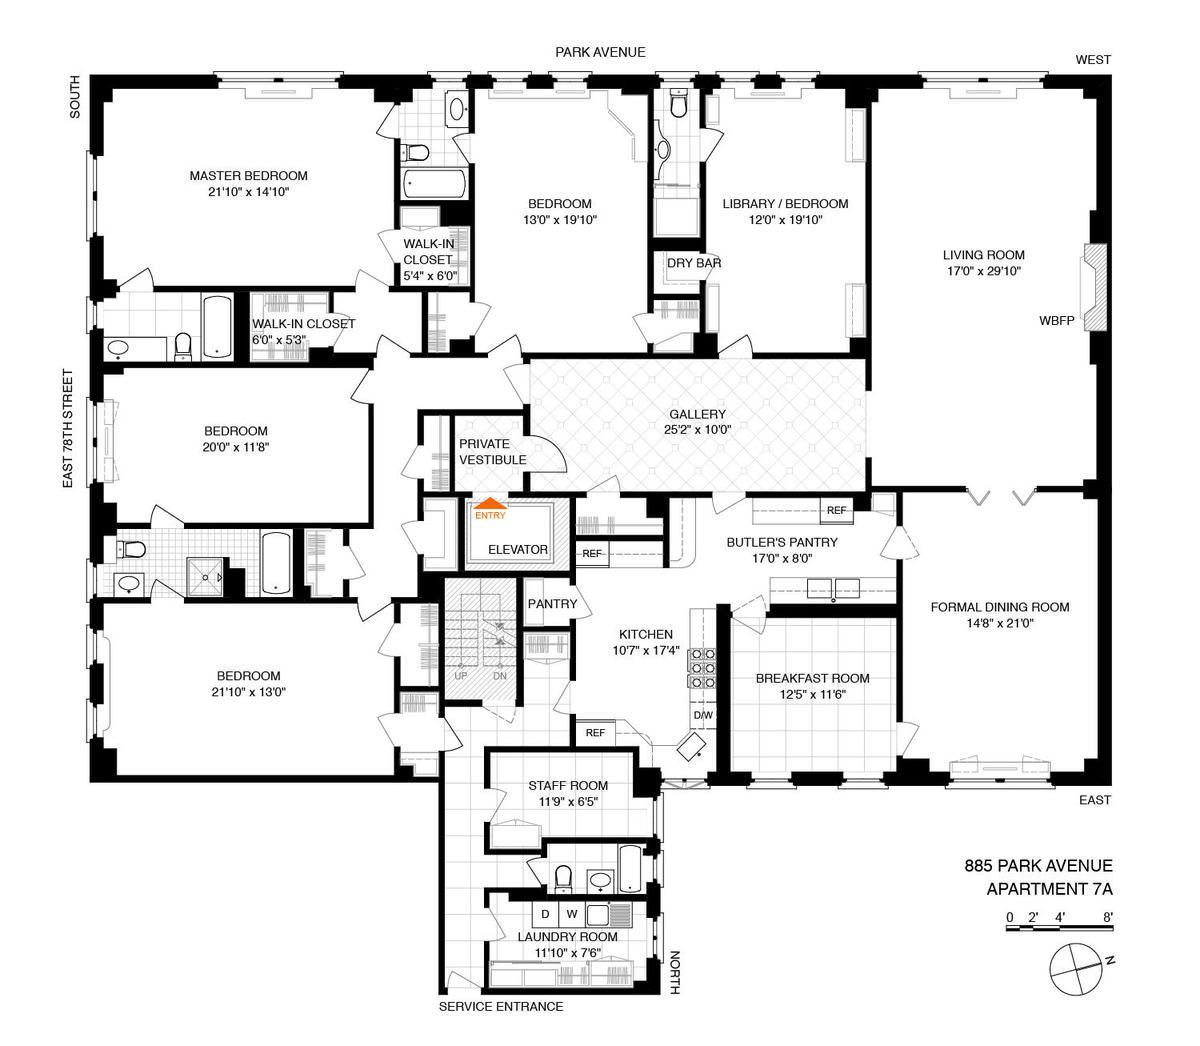 Palatial Upper East Side Apartment With Classic Details Asks 10 8m Upper East Side Apartment Luxury Floor Plans Apartment Floor Plans